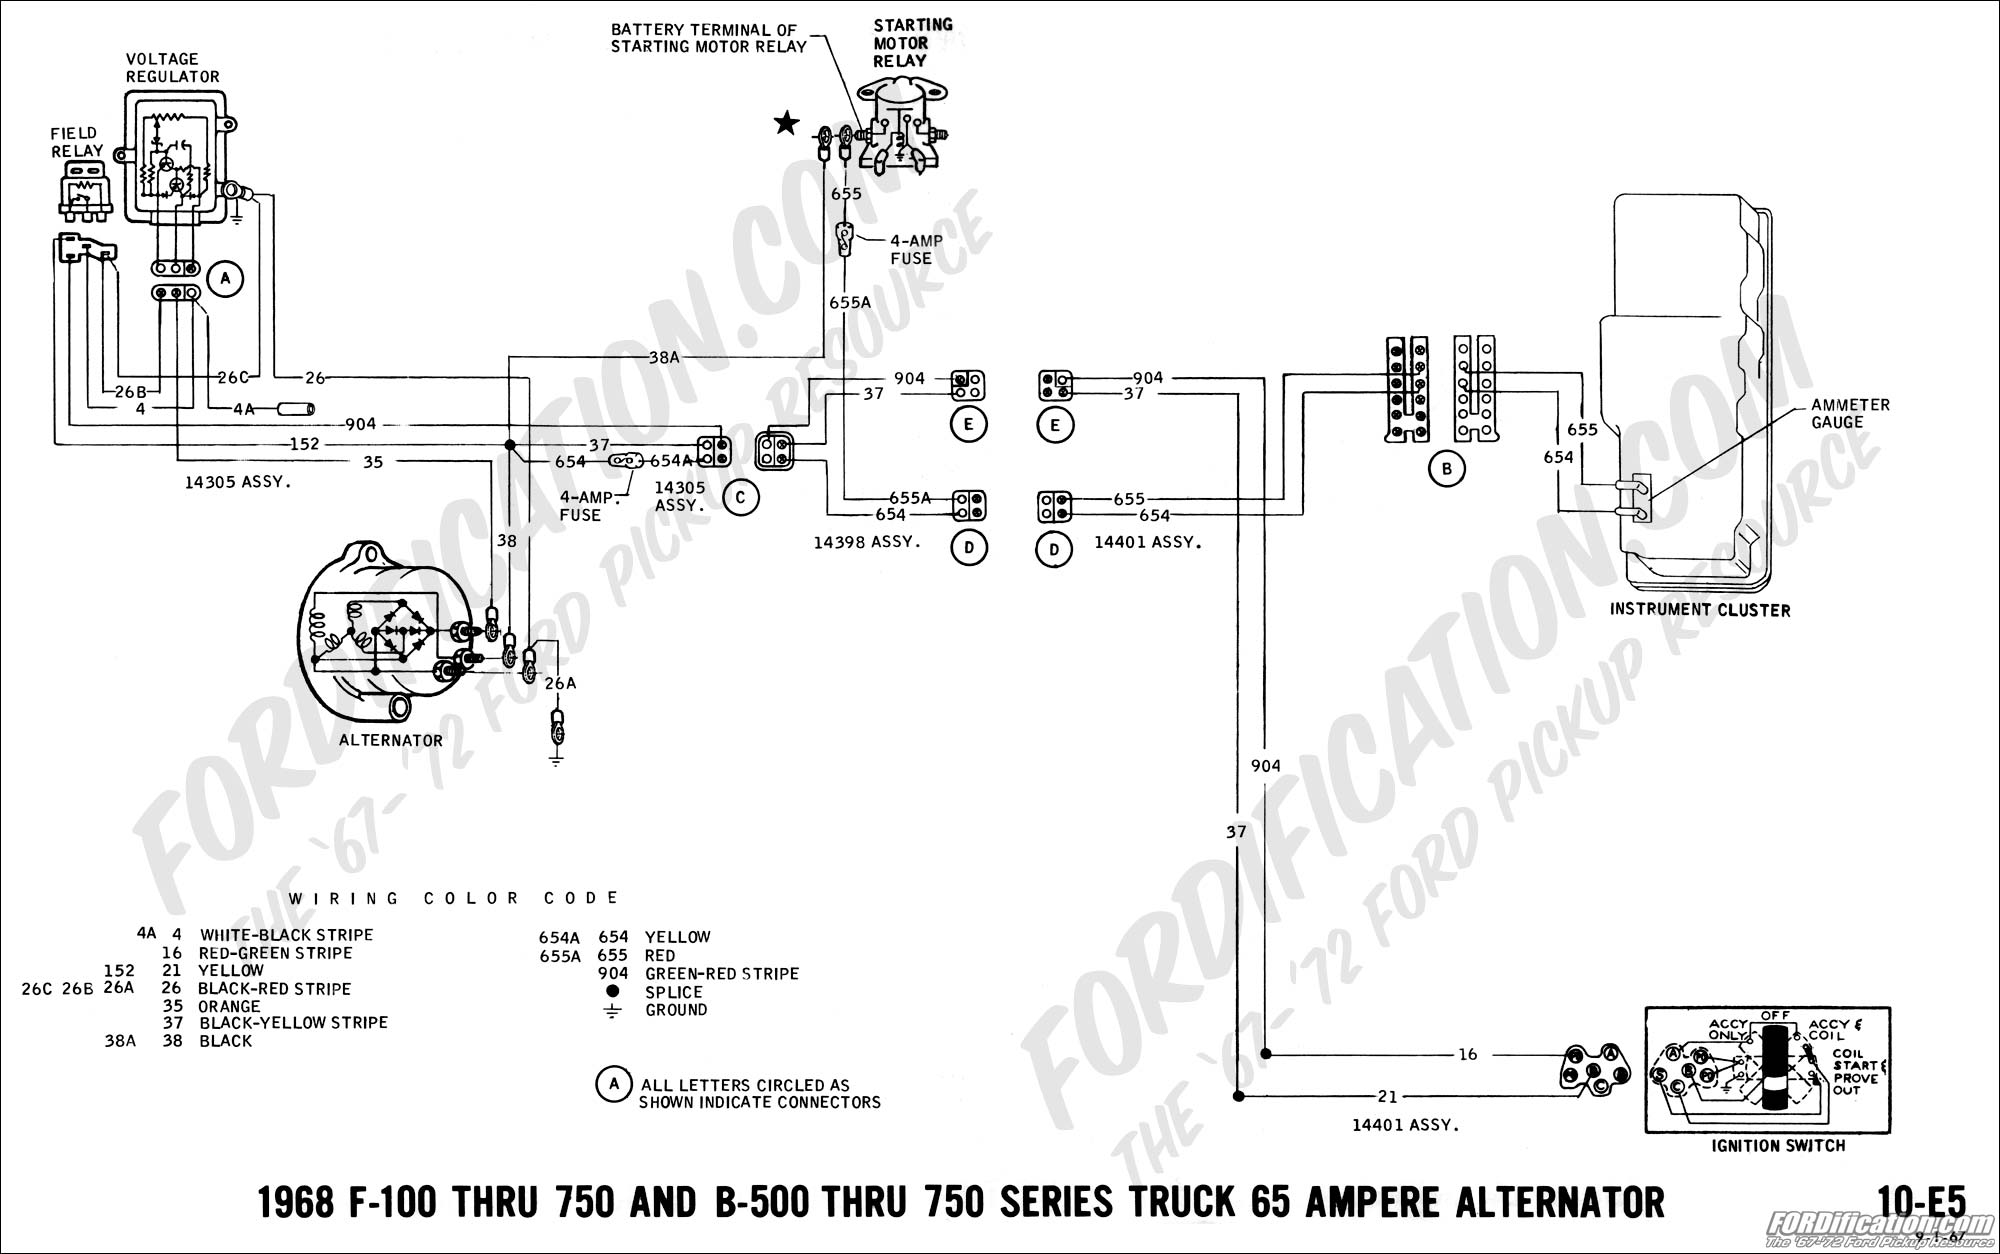 68 07 ford truck technical drawings and schematics section h wiring Chevy Ignition Switch Wiring Diagram at bakdesigns.co